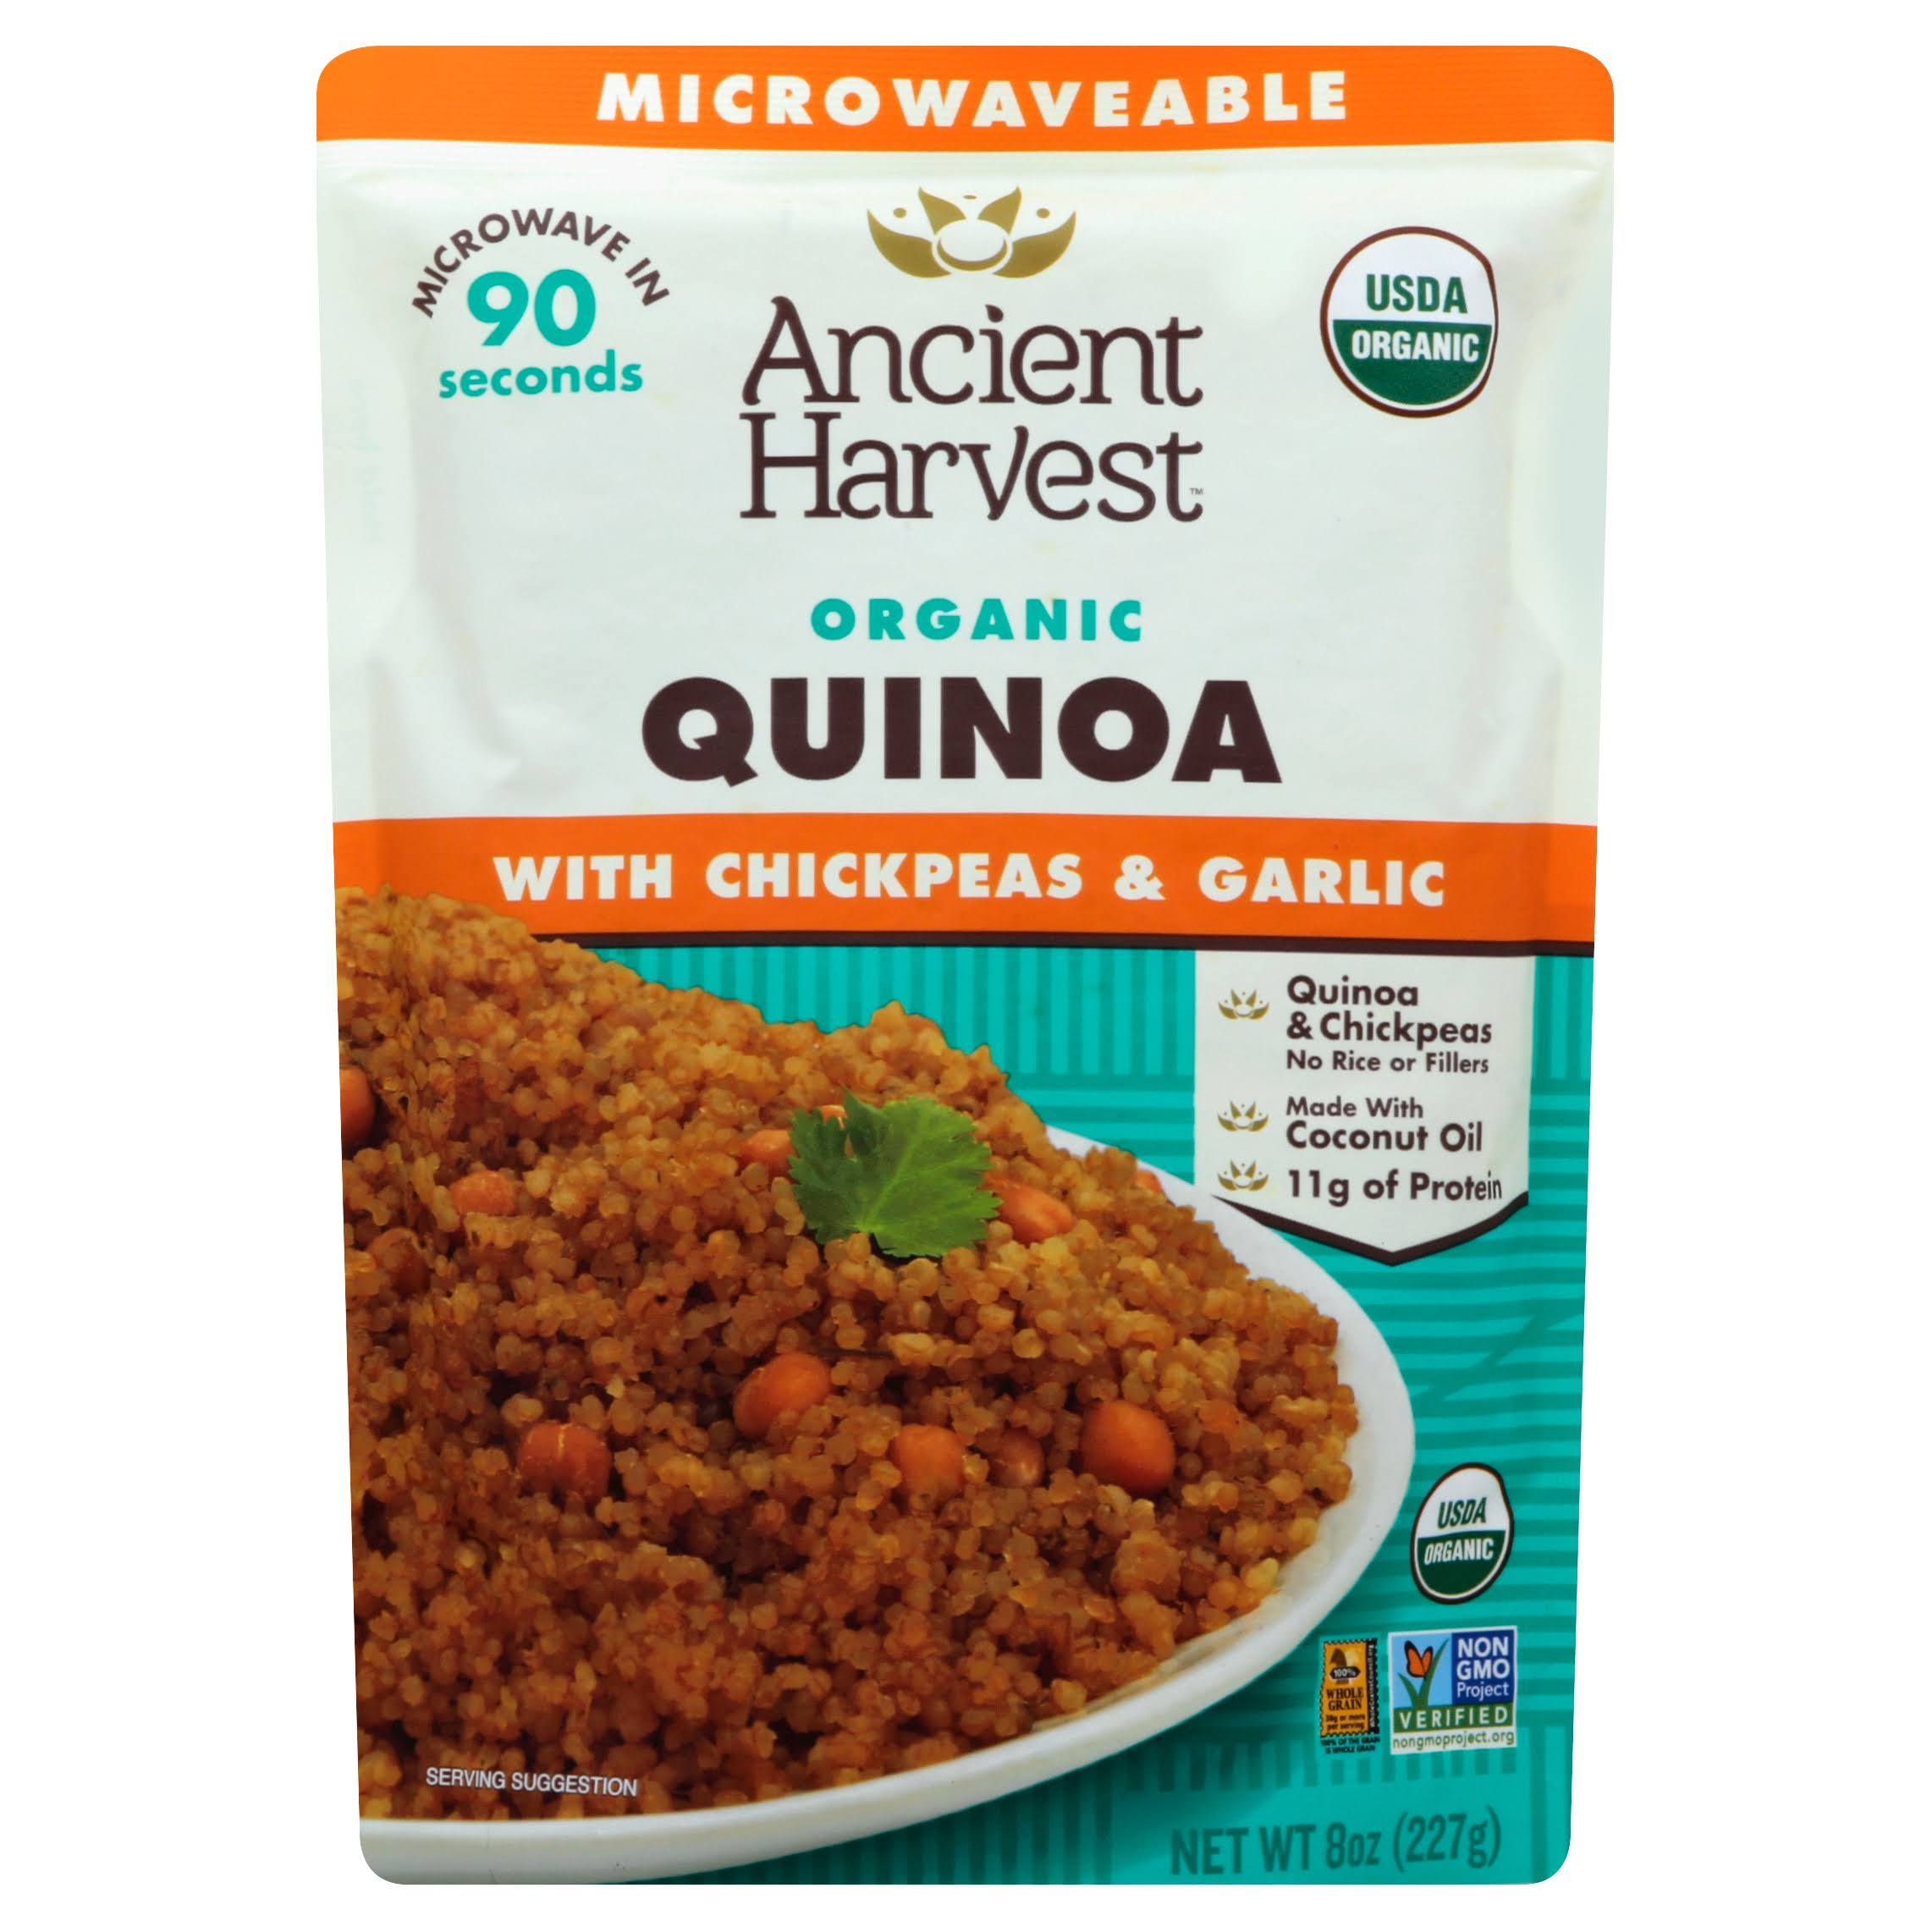 Ancient Harvest Organic Microwaveable Quinoa with Chickpeas and Garlic - 8oz